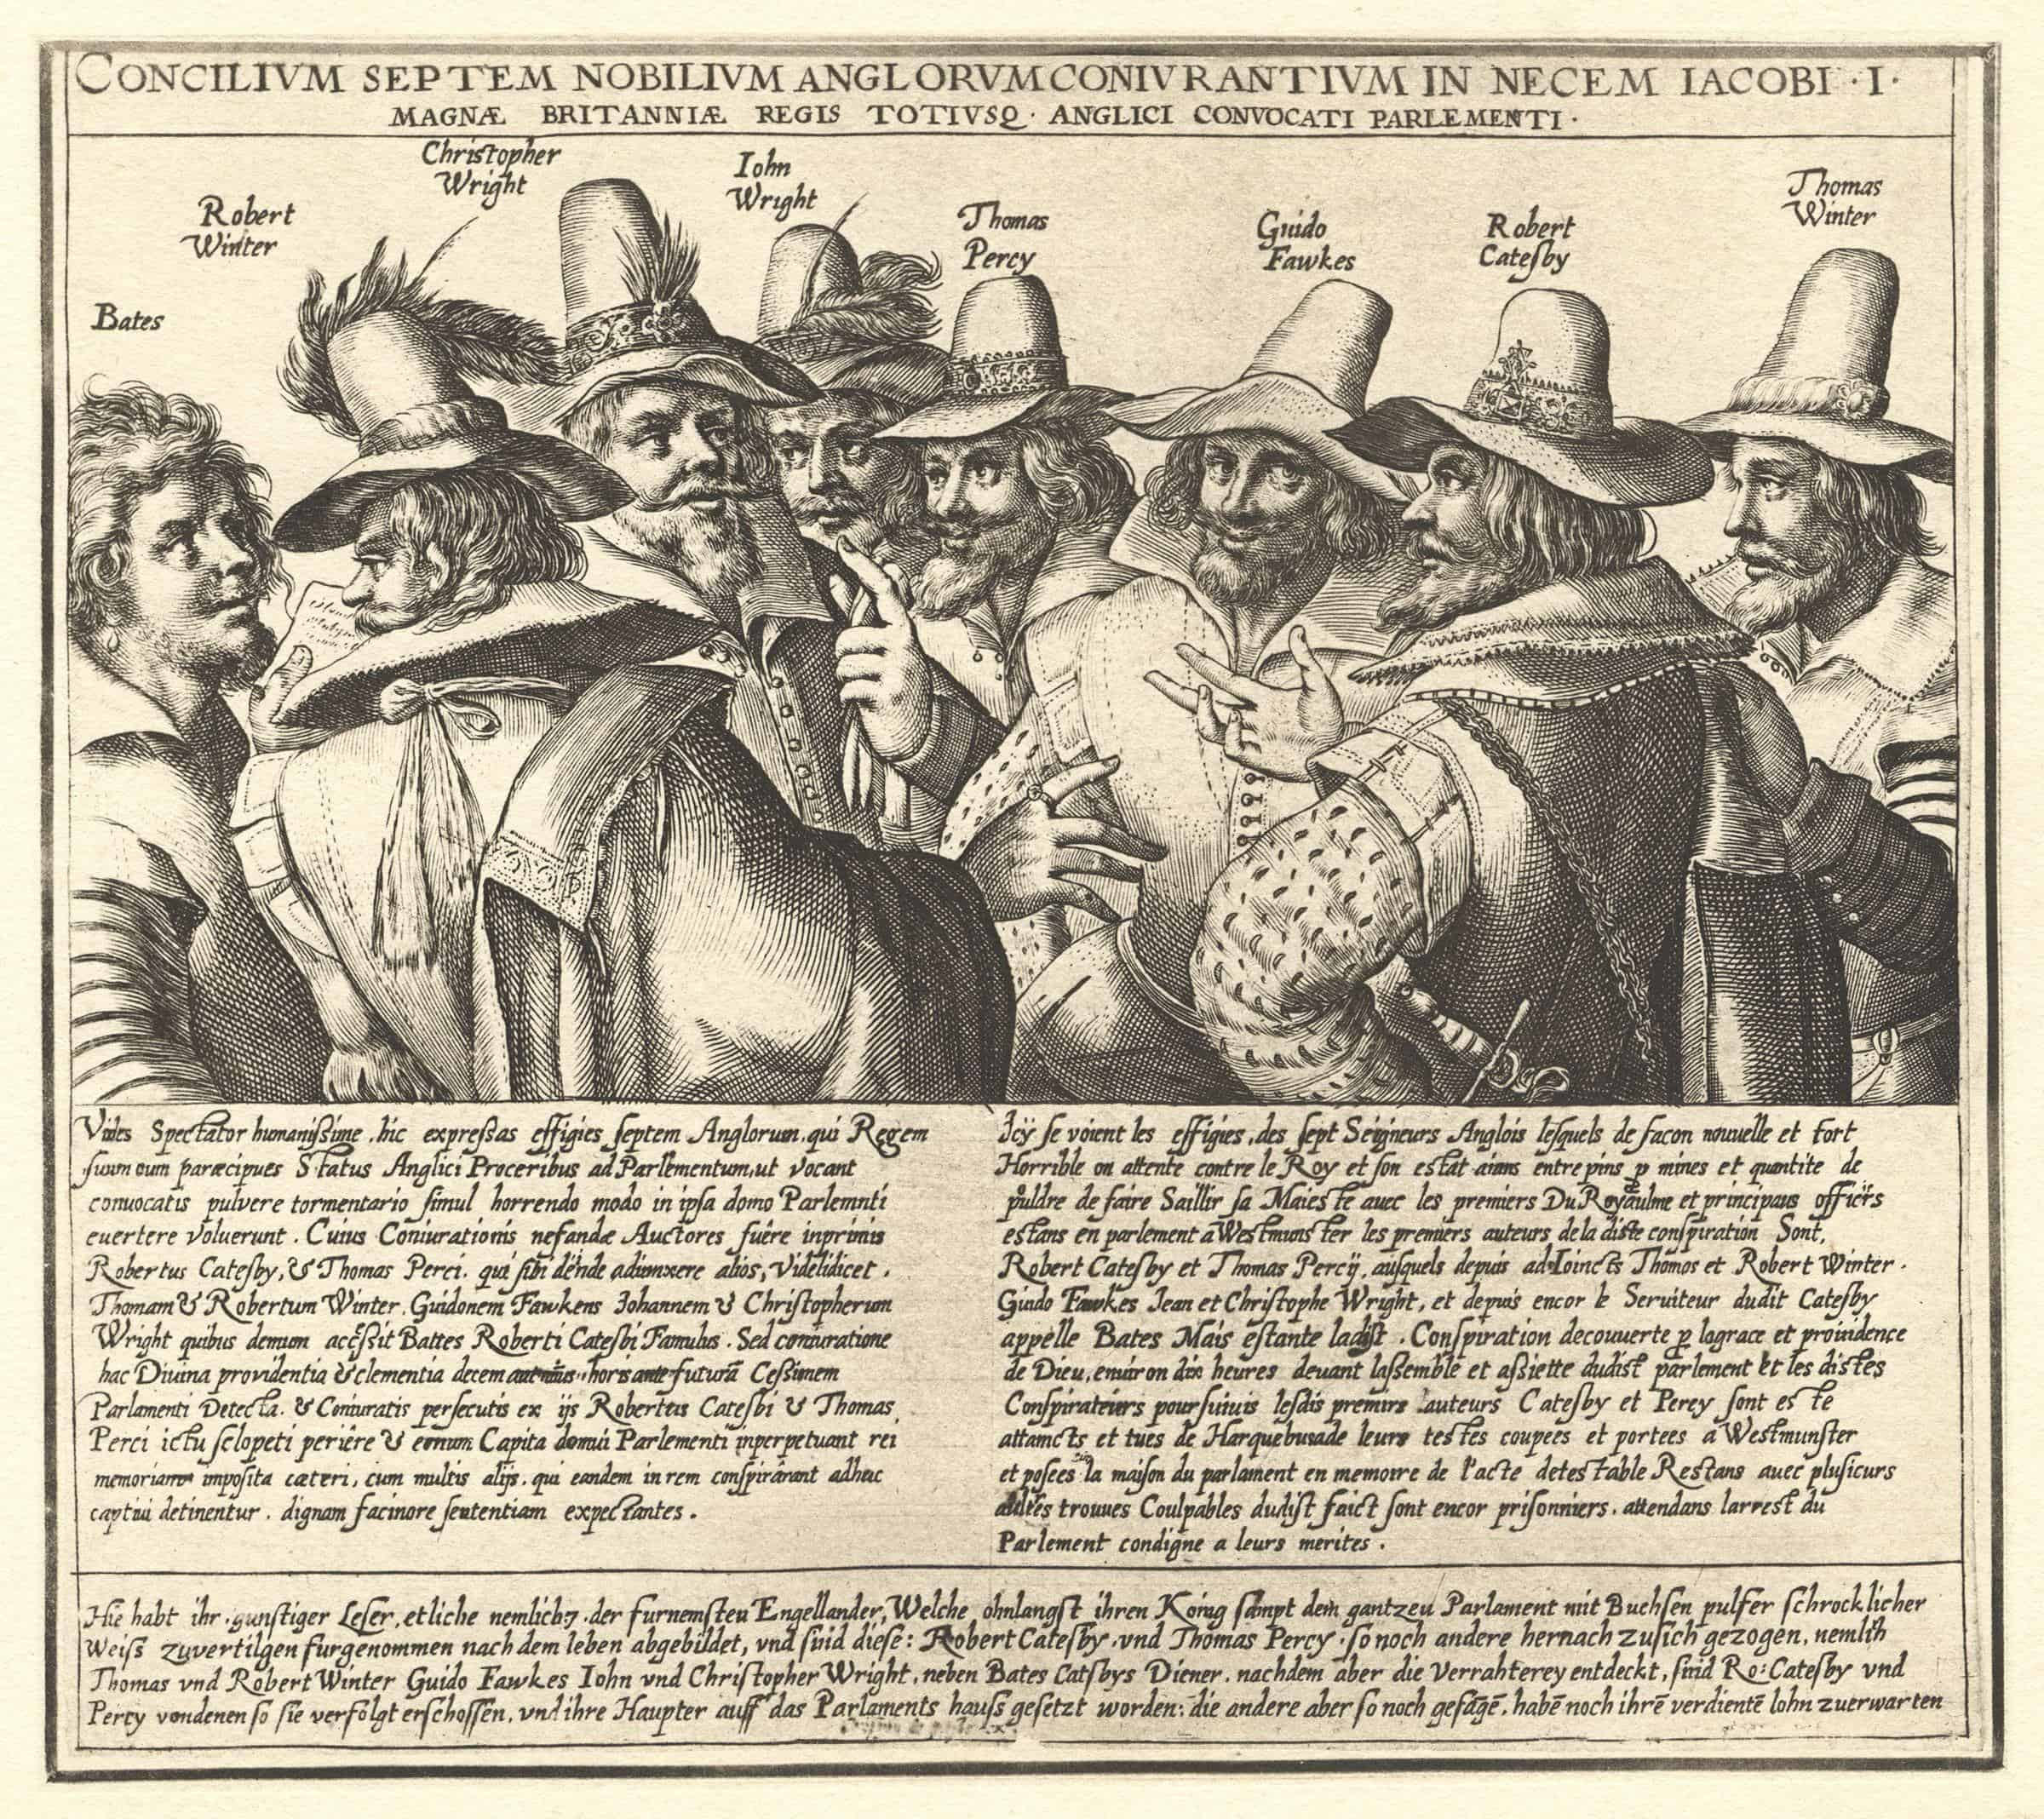 An engraving of a group of 8 men, talking, wearing 17th century clothing. There is text in Latin underneath